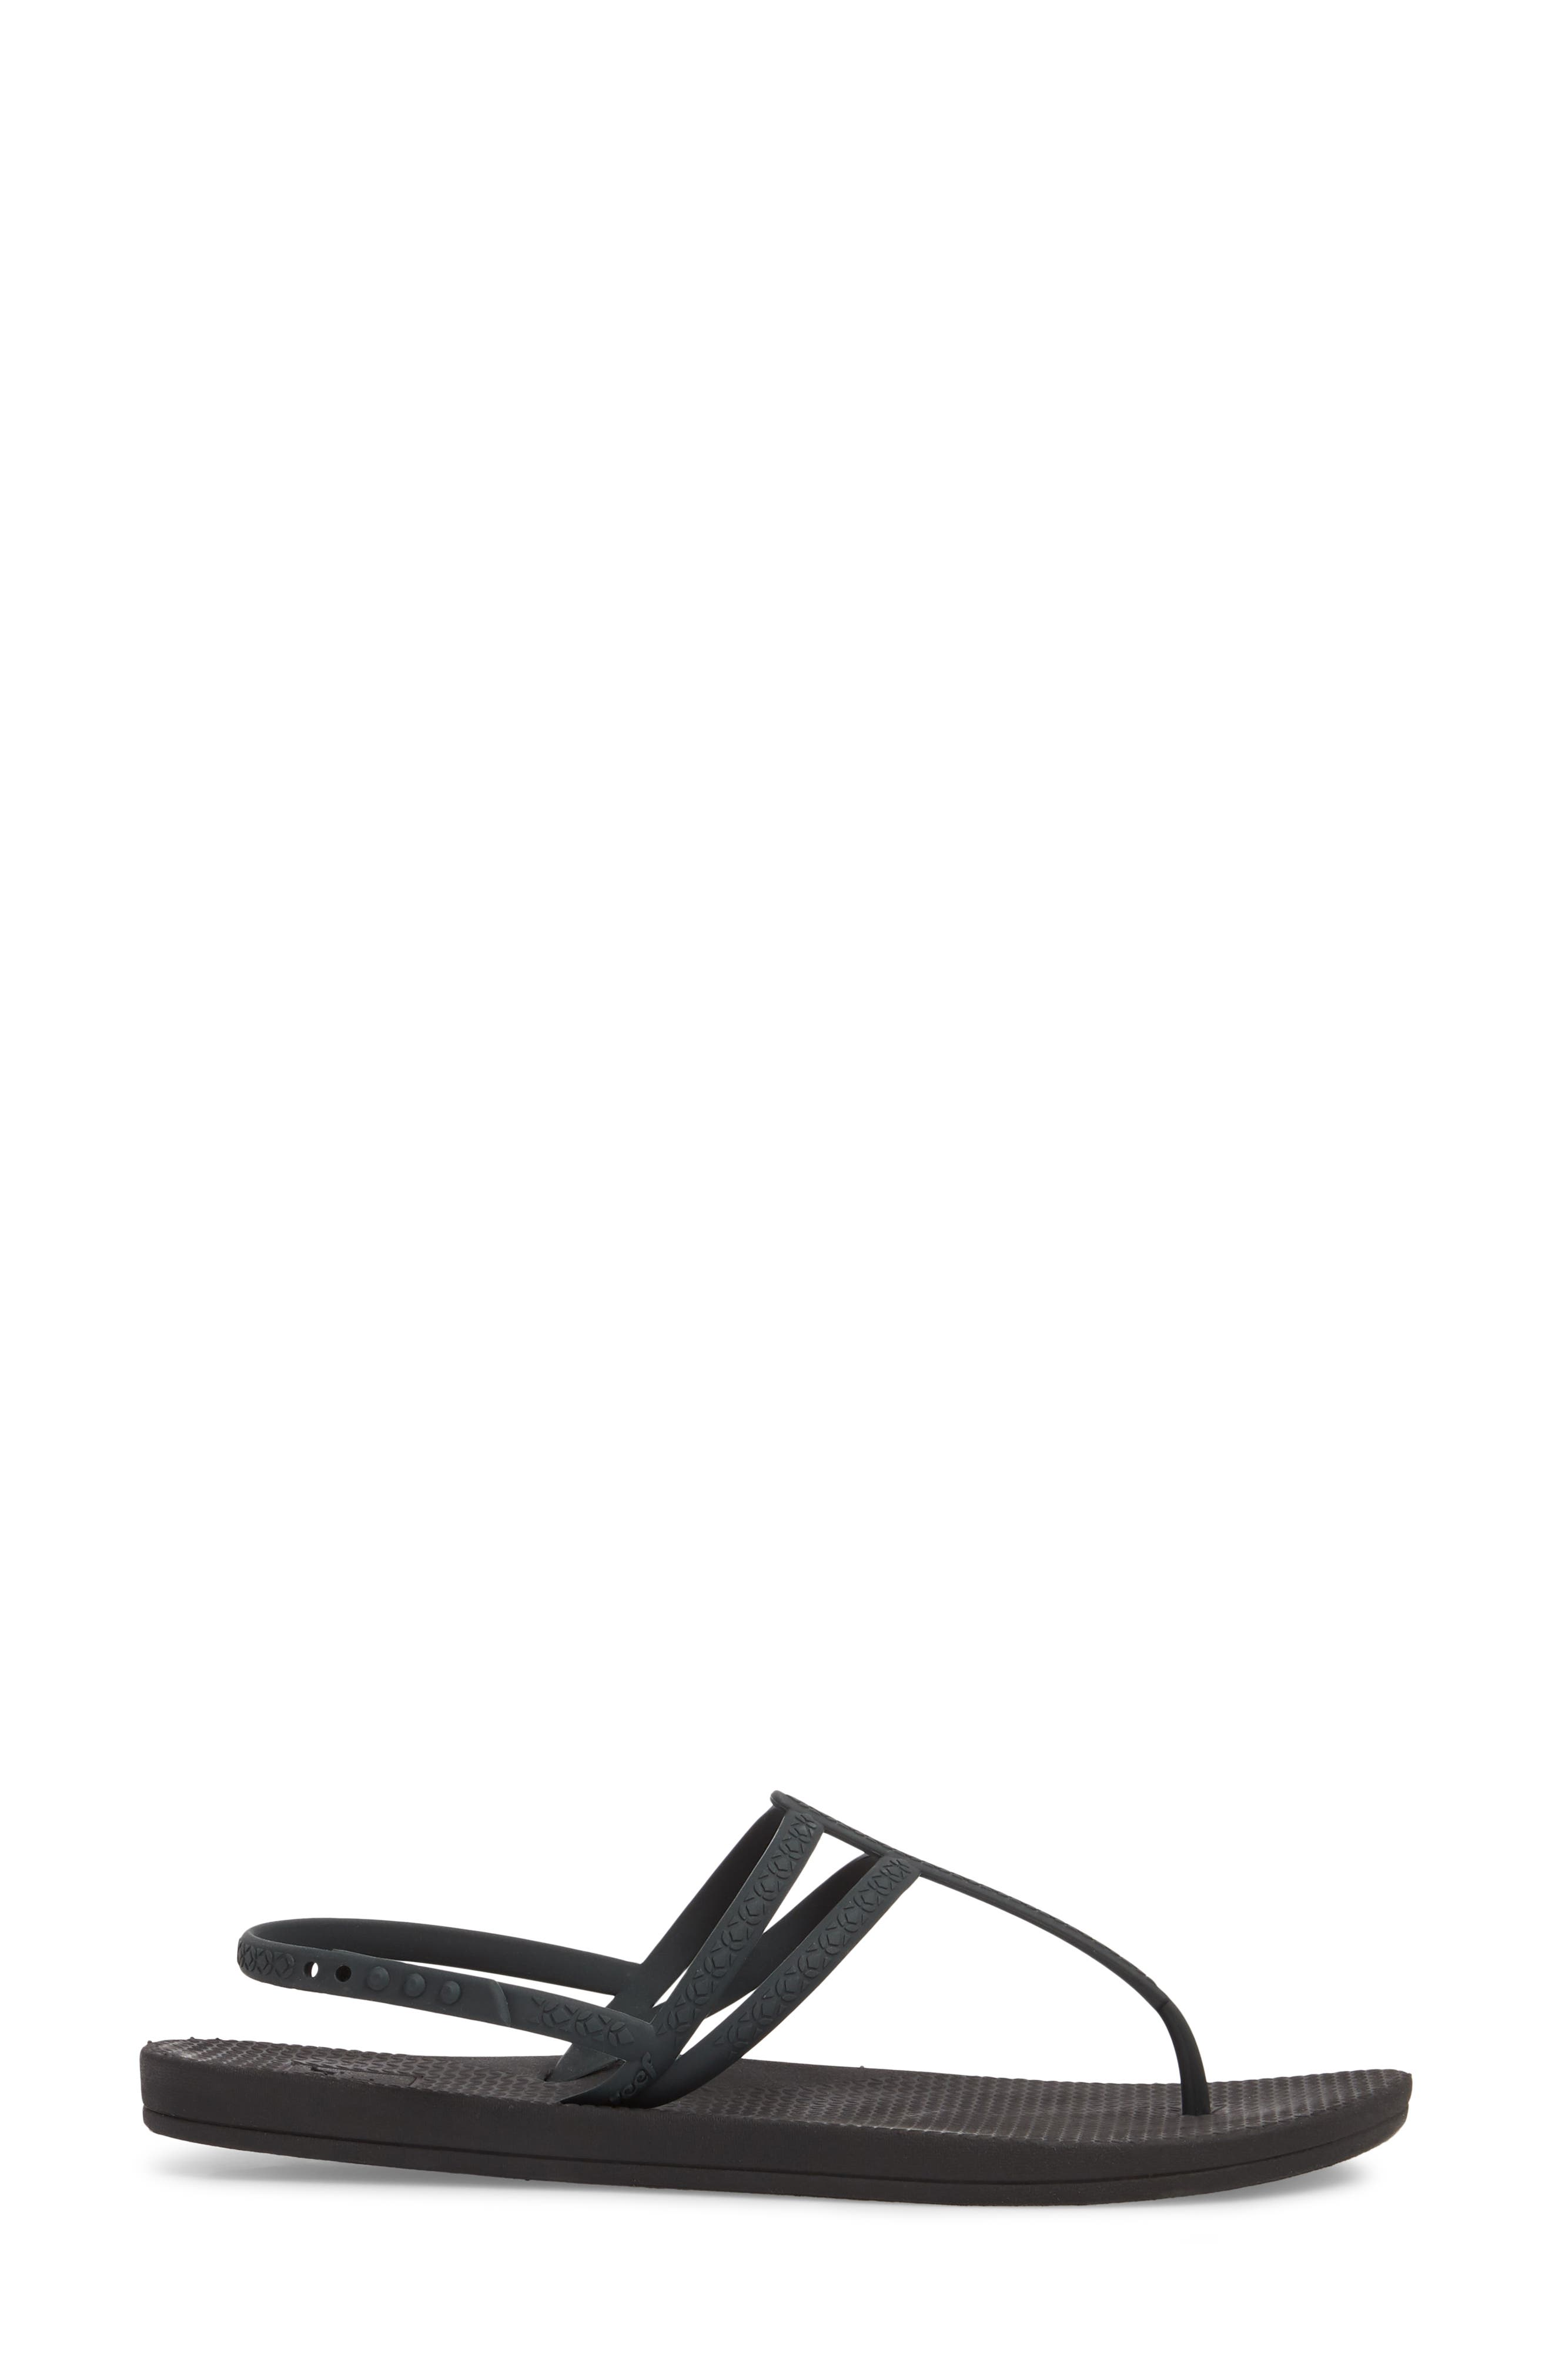 Escape Lux T-Strap Sandal,                             Alternate thumbnail 3, color,                             Black